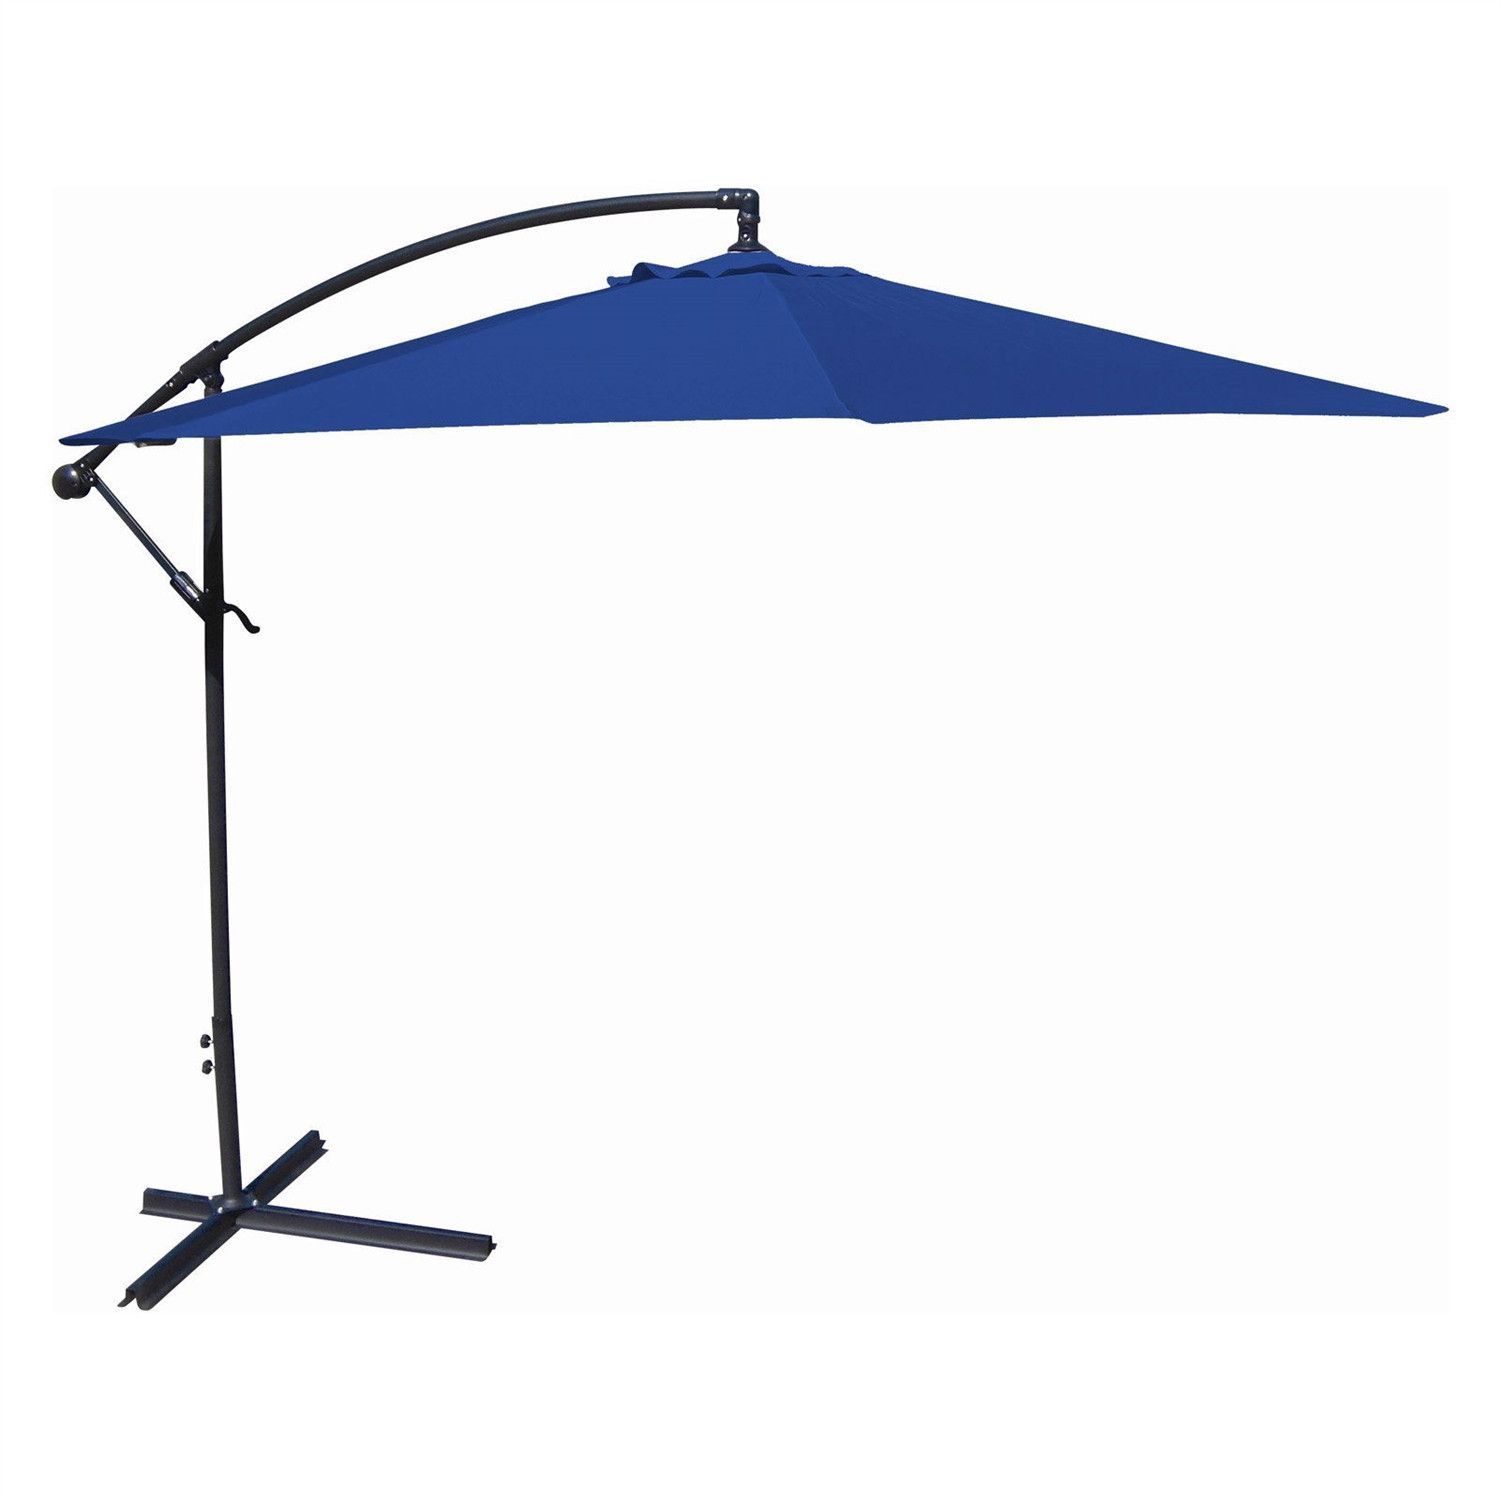 10-ft offset cantilever patio umbrella with royal blue canopy